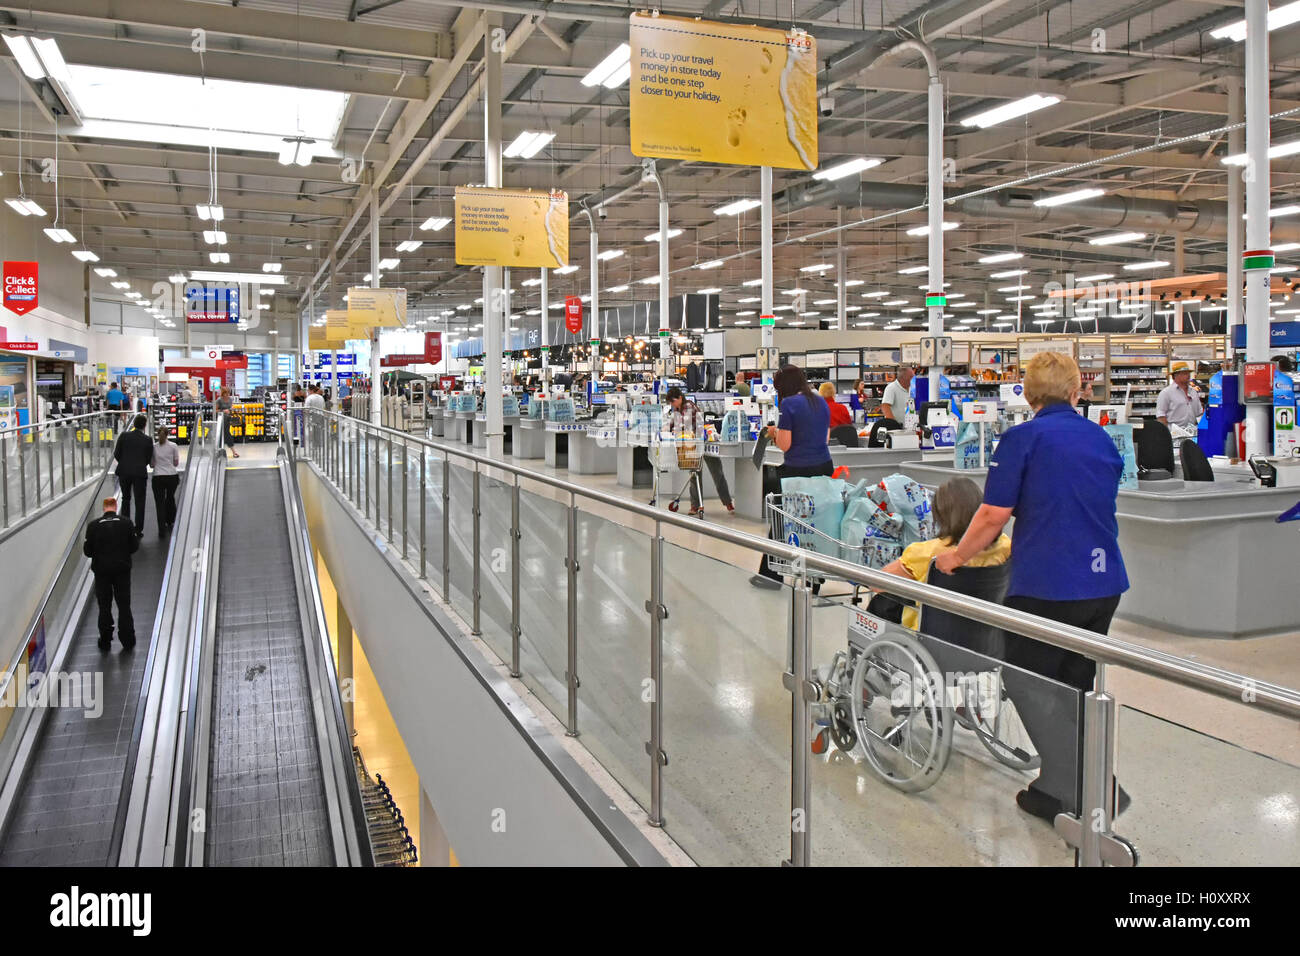 Disability customer service staff & inclined travellators in Tesco supermarket store to access shopping floor - Stock Image